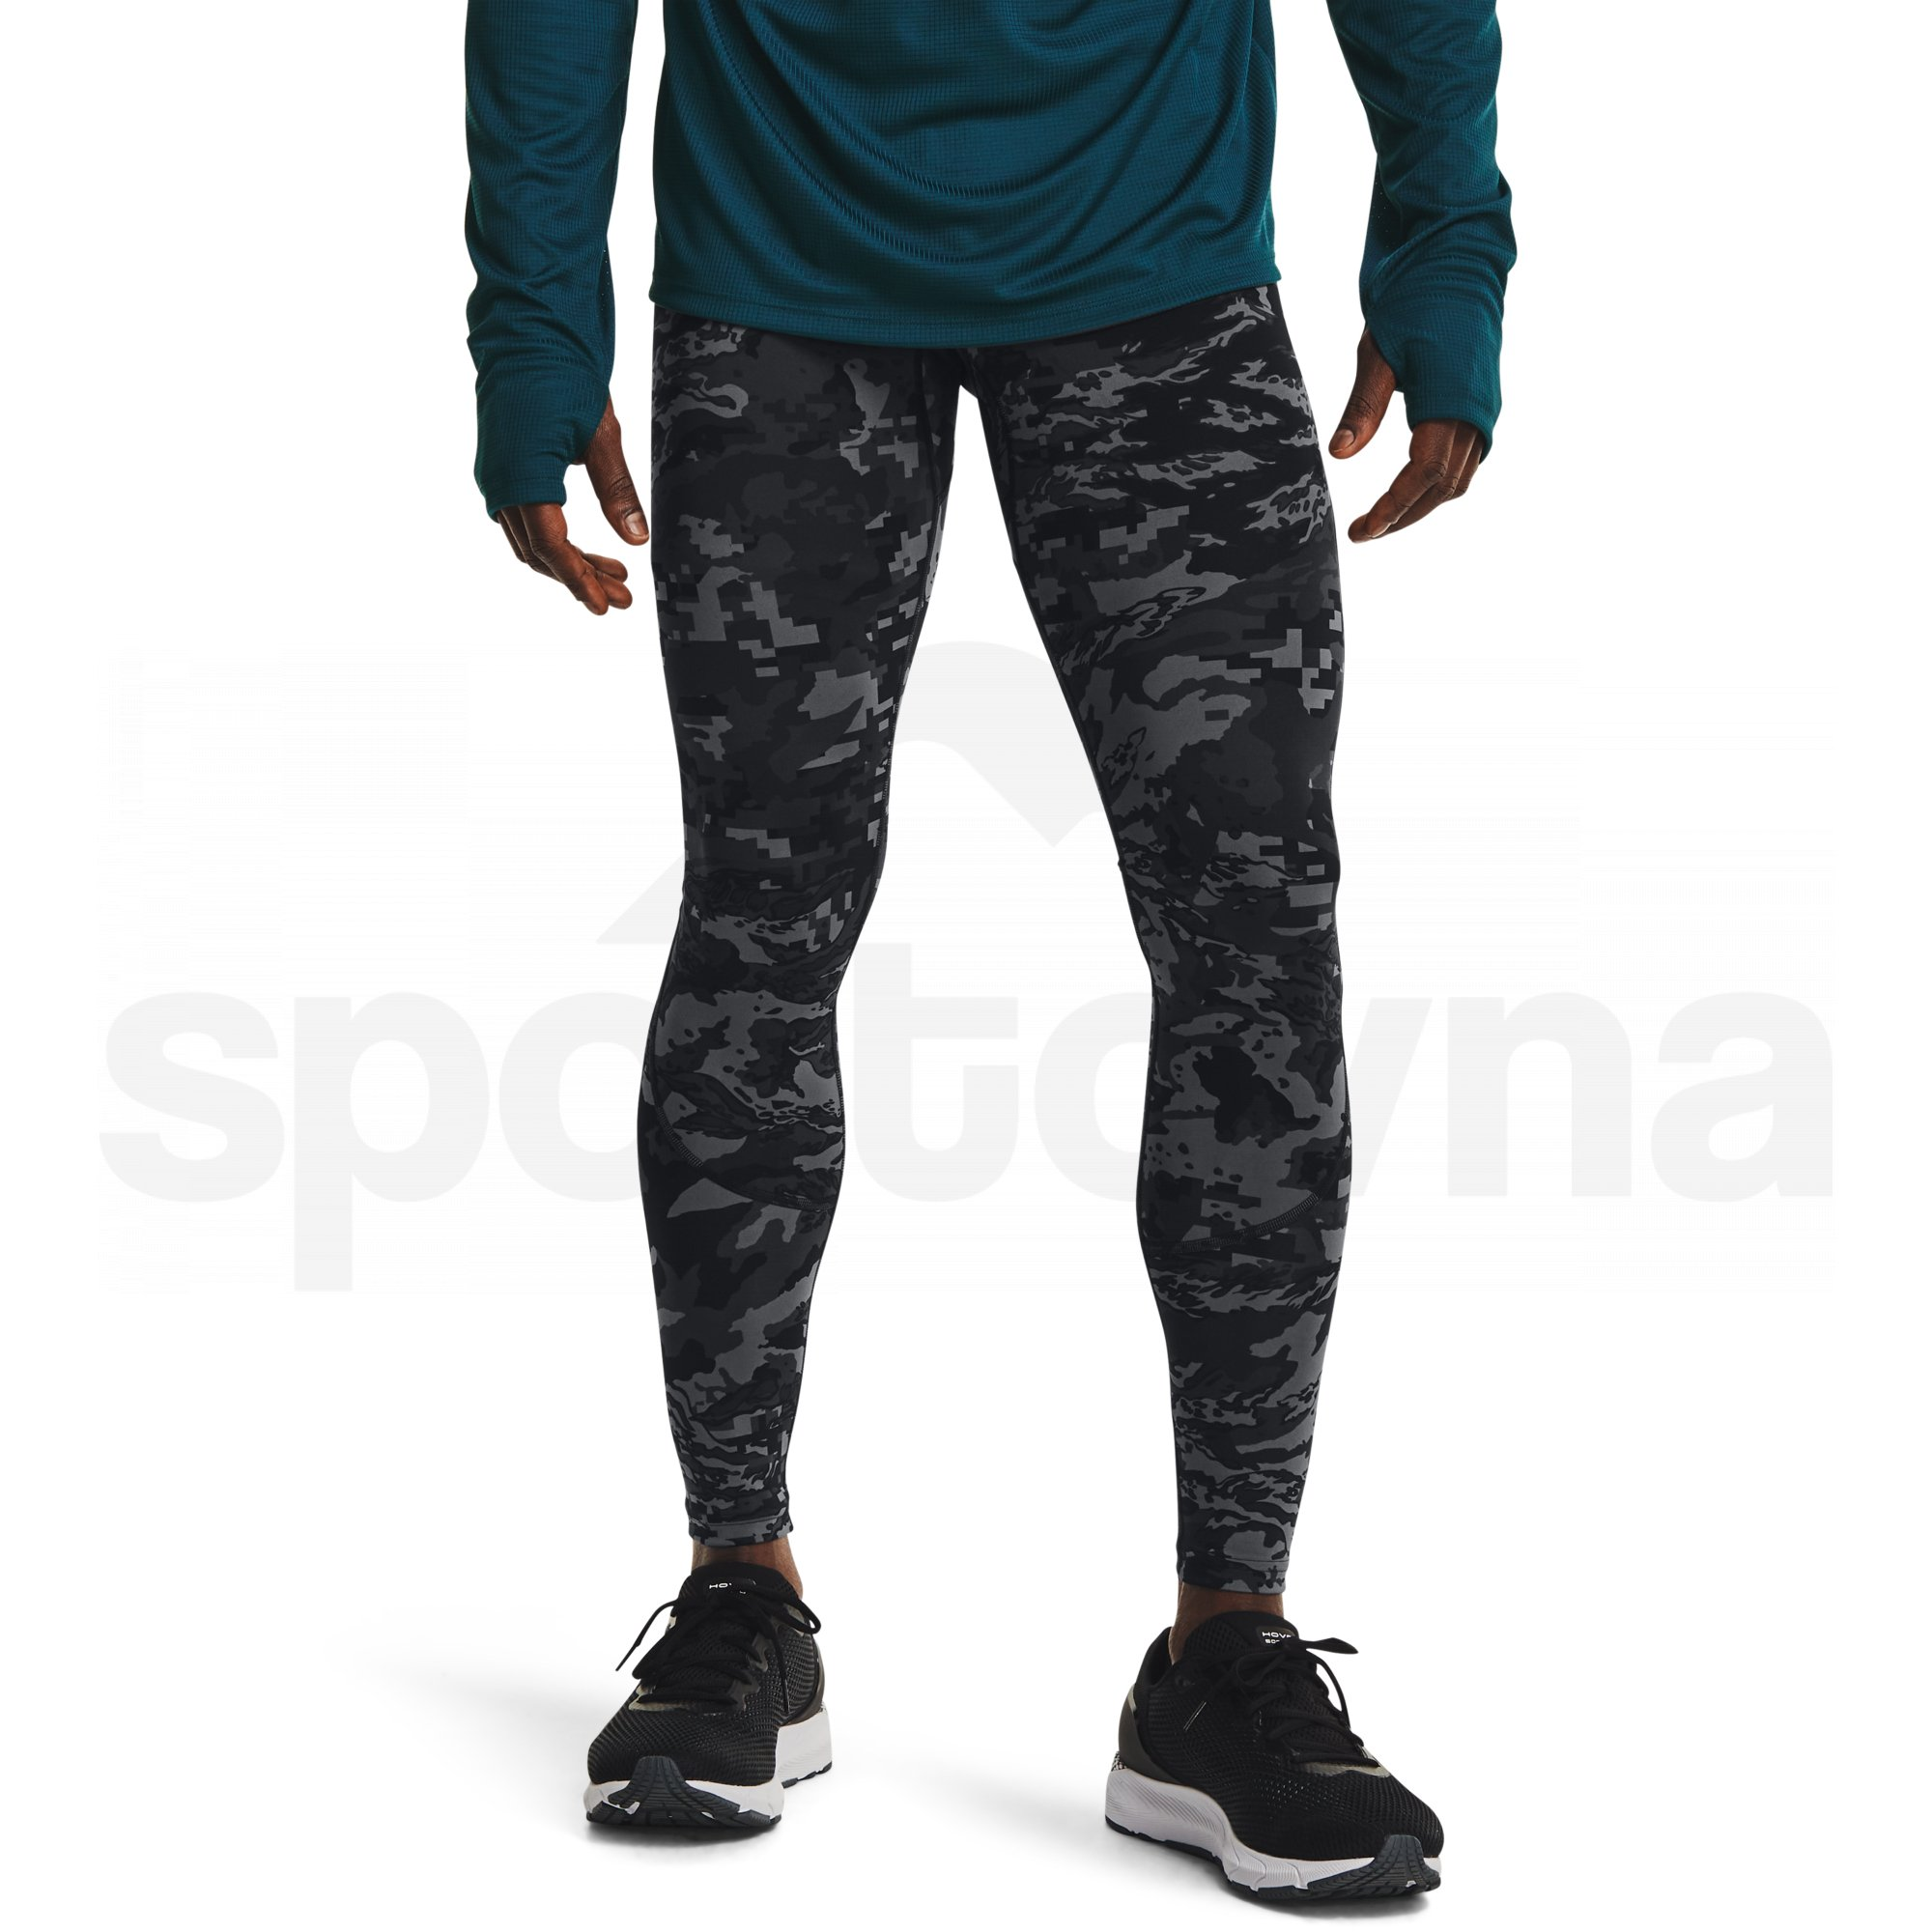 1362685-001_Under Armour Fly Fast Printed Tight M